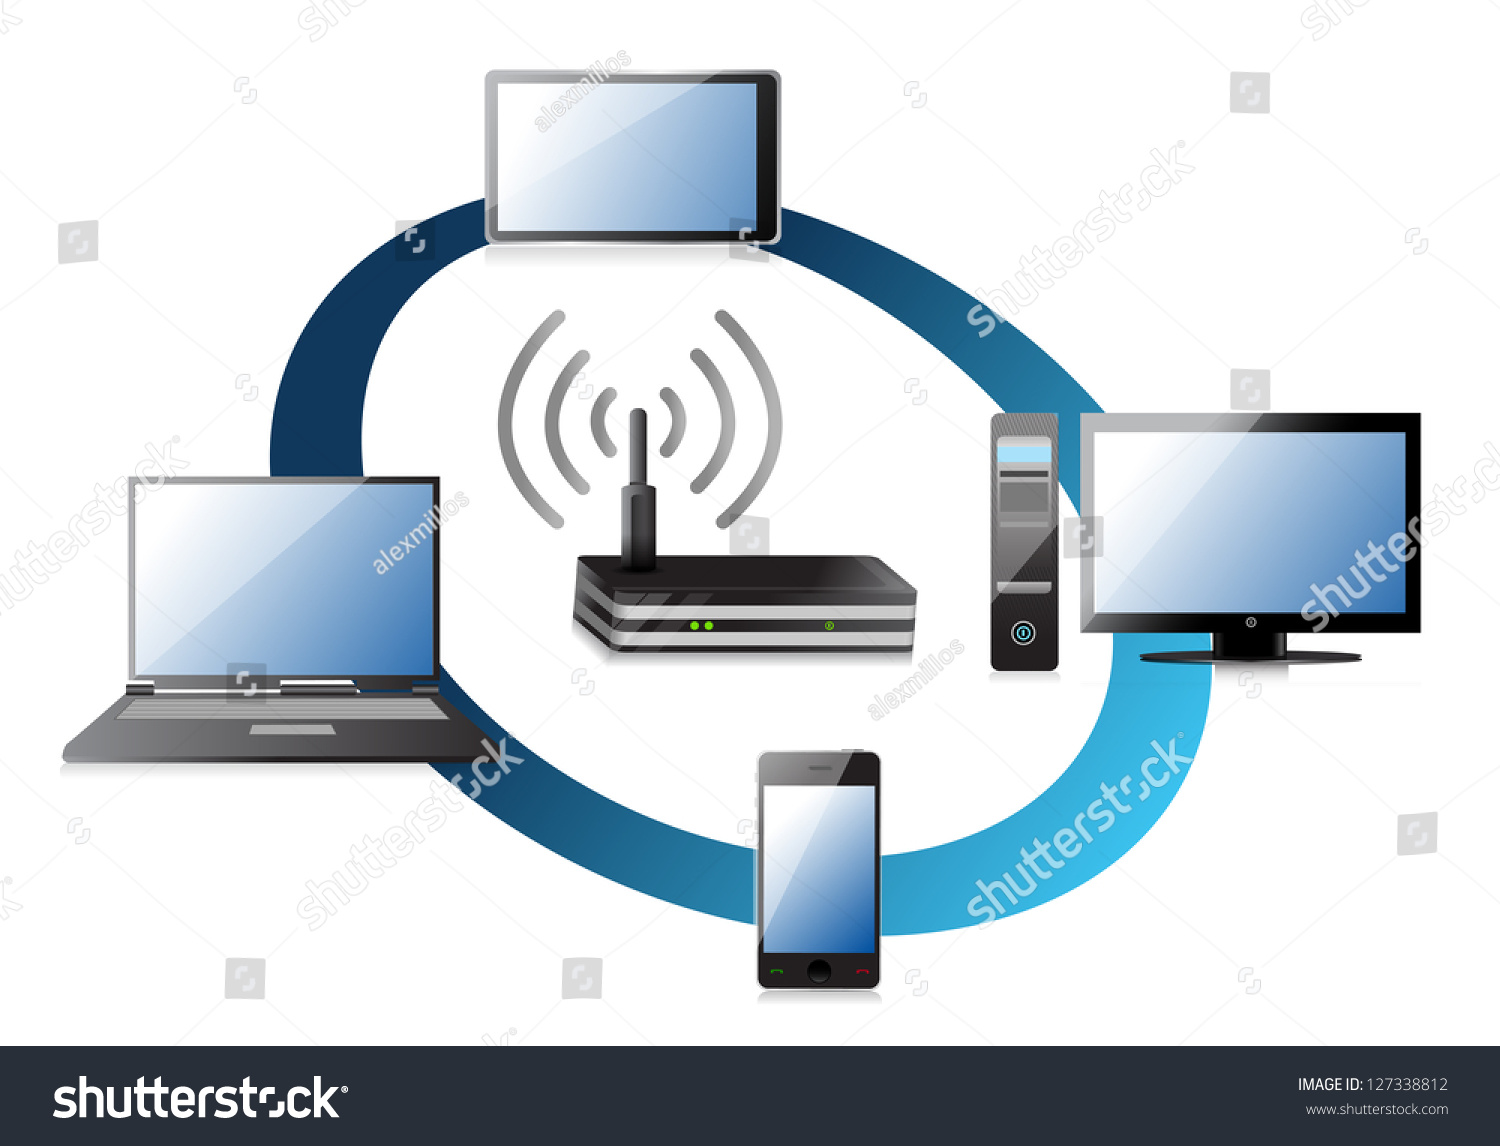 stock photo home wifi network concept illustration design over a white background 127338812 home wifi network concept illustration design over a white,Home Wifi Network Design